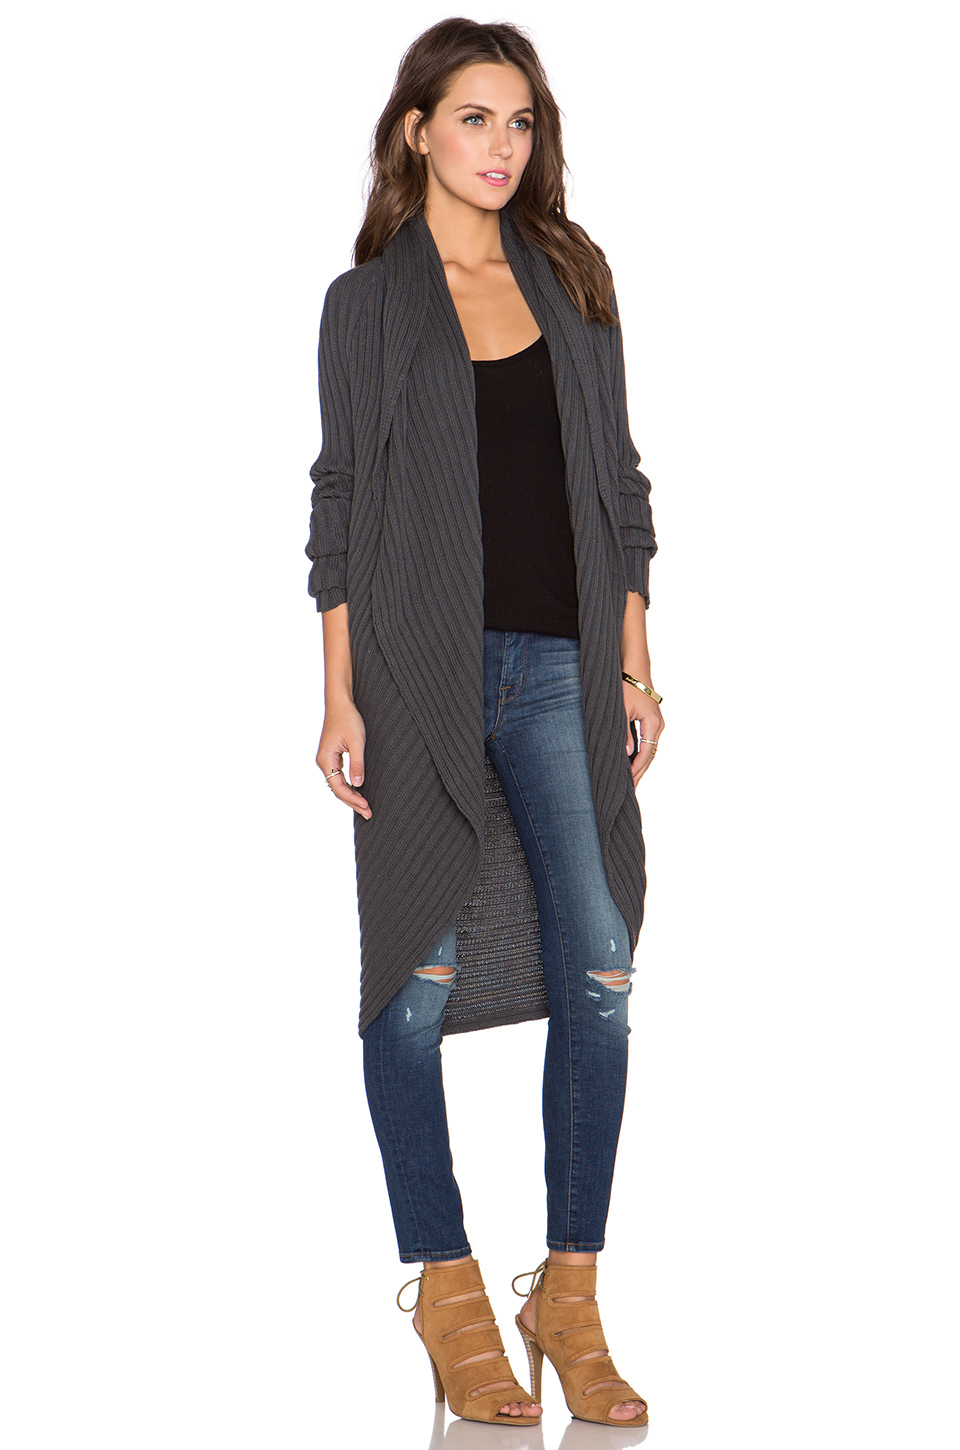 la-made-charcoal-elle-cardigan-gray-product-2-994873479-normal.jpg